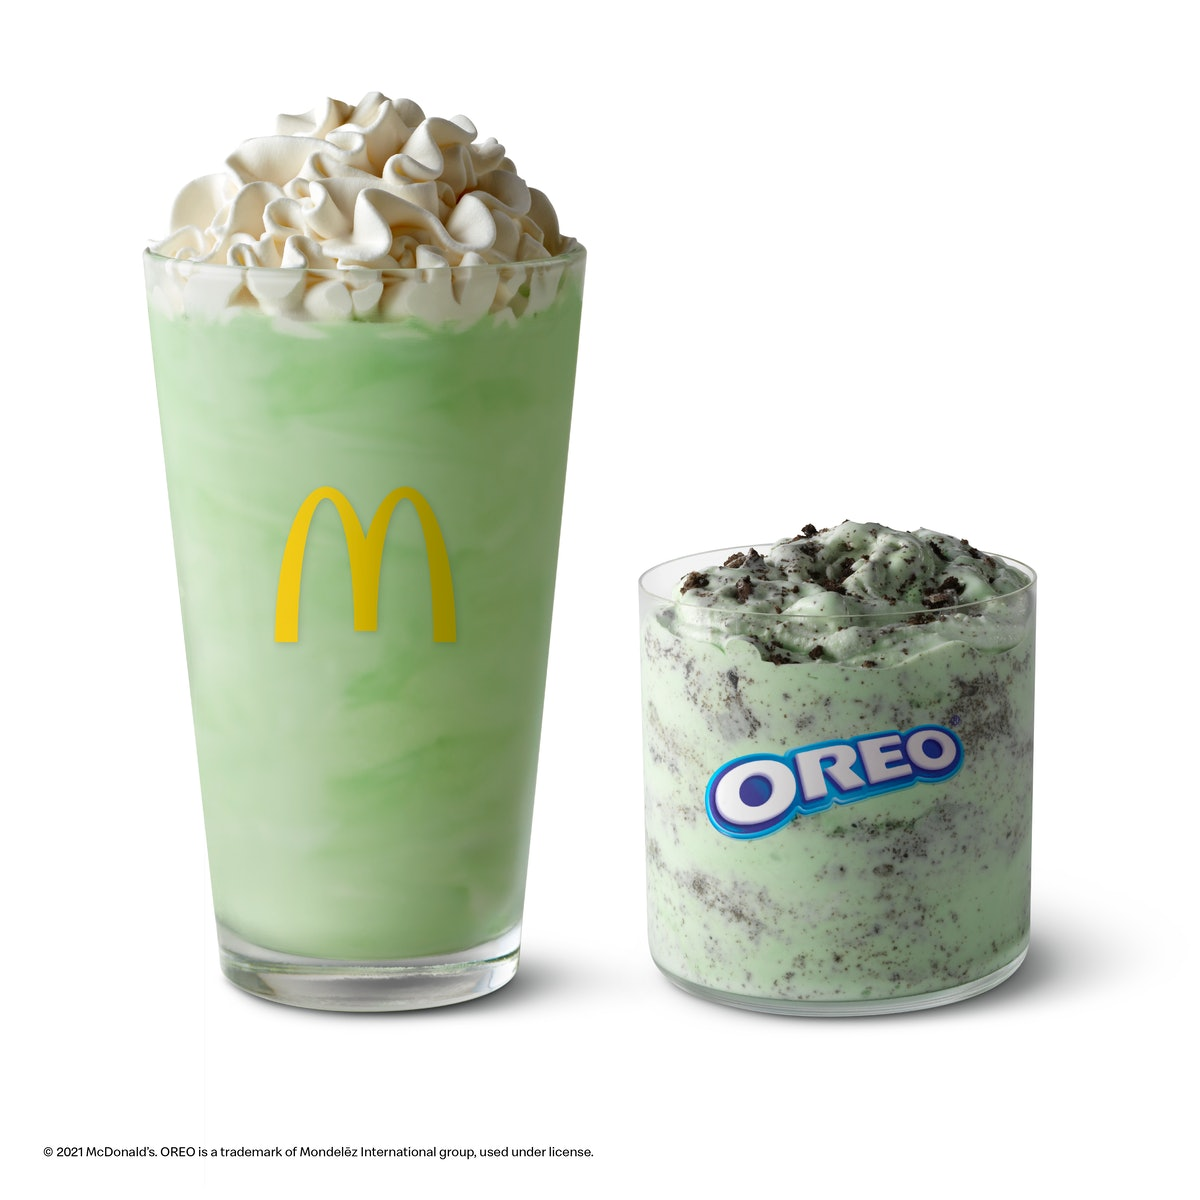 McDonald's Shamrock Shake is coming back on Feb. 15 for an early St. Patty's Day celebration.